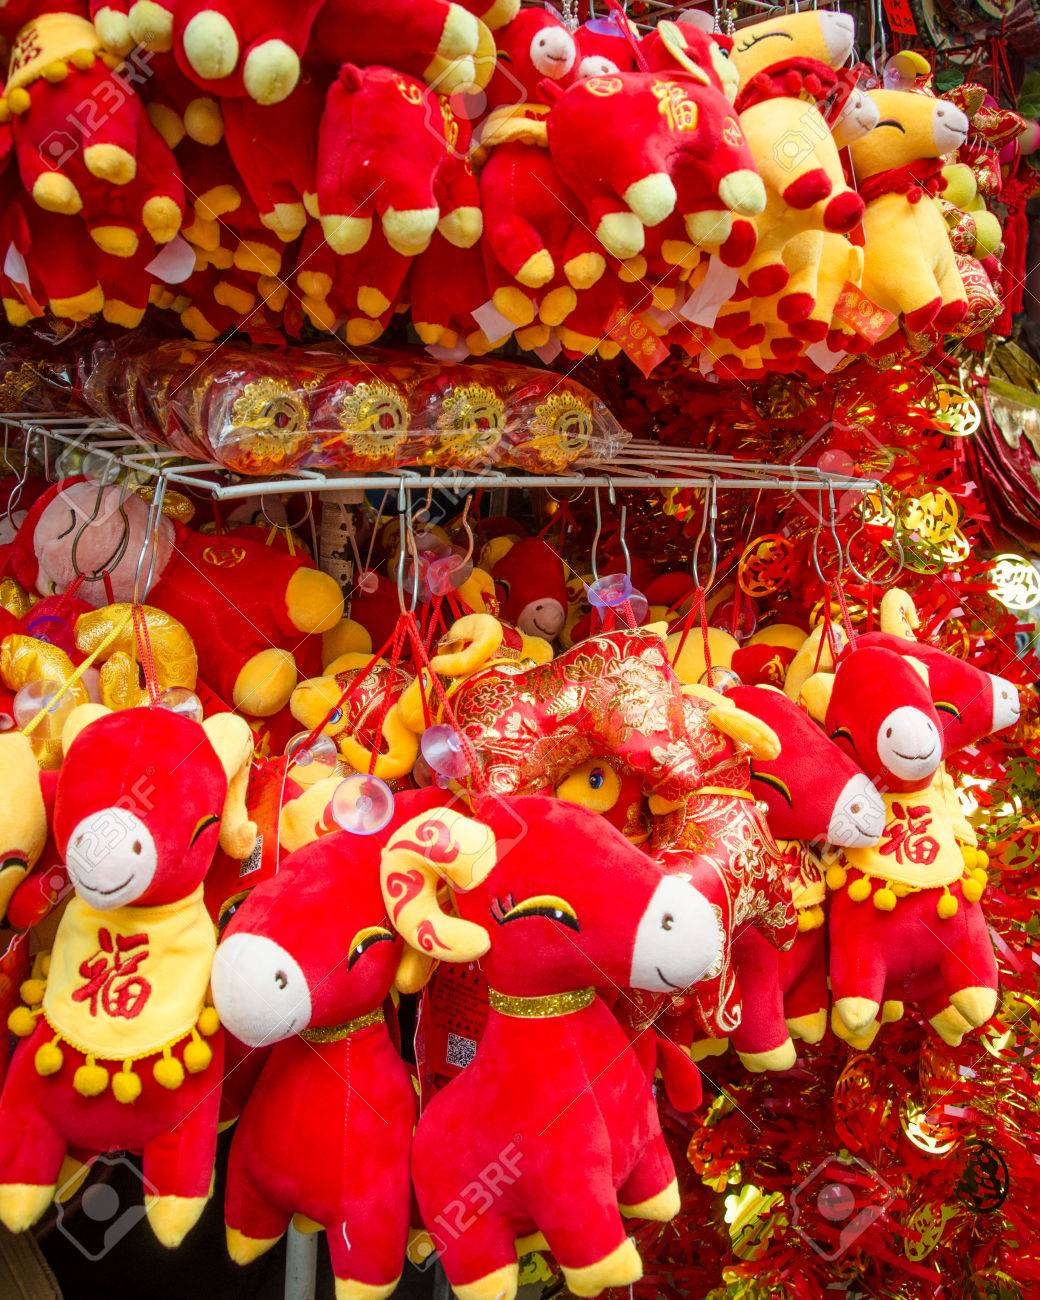 colorful year of the ram stuffed animals celebrate chinese new year stock photo 39268997 - How To Celebrate Chinese New Year